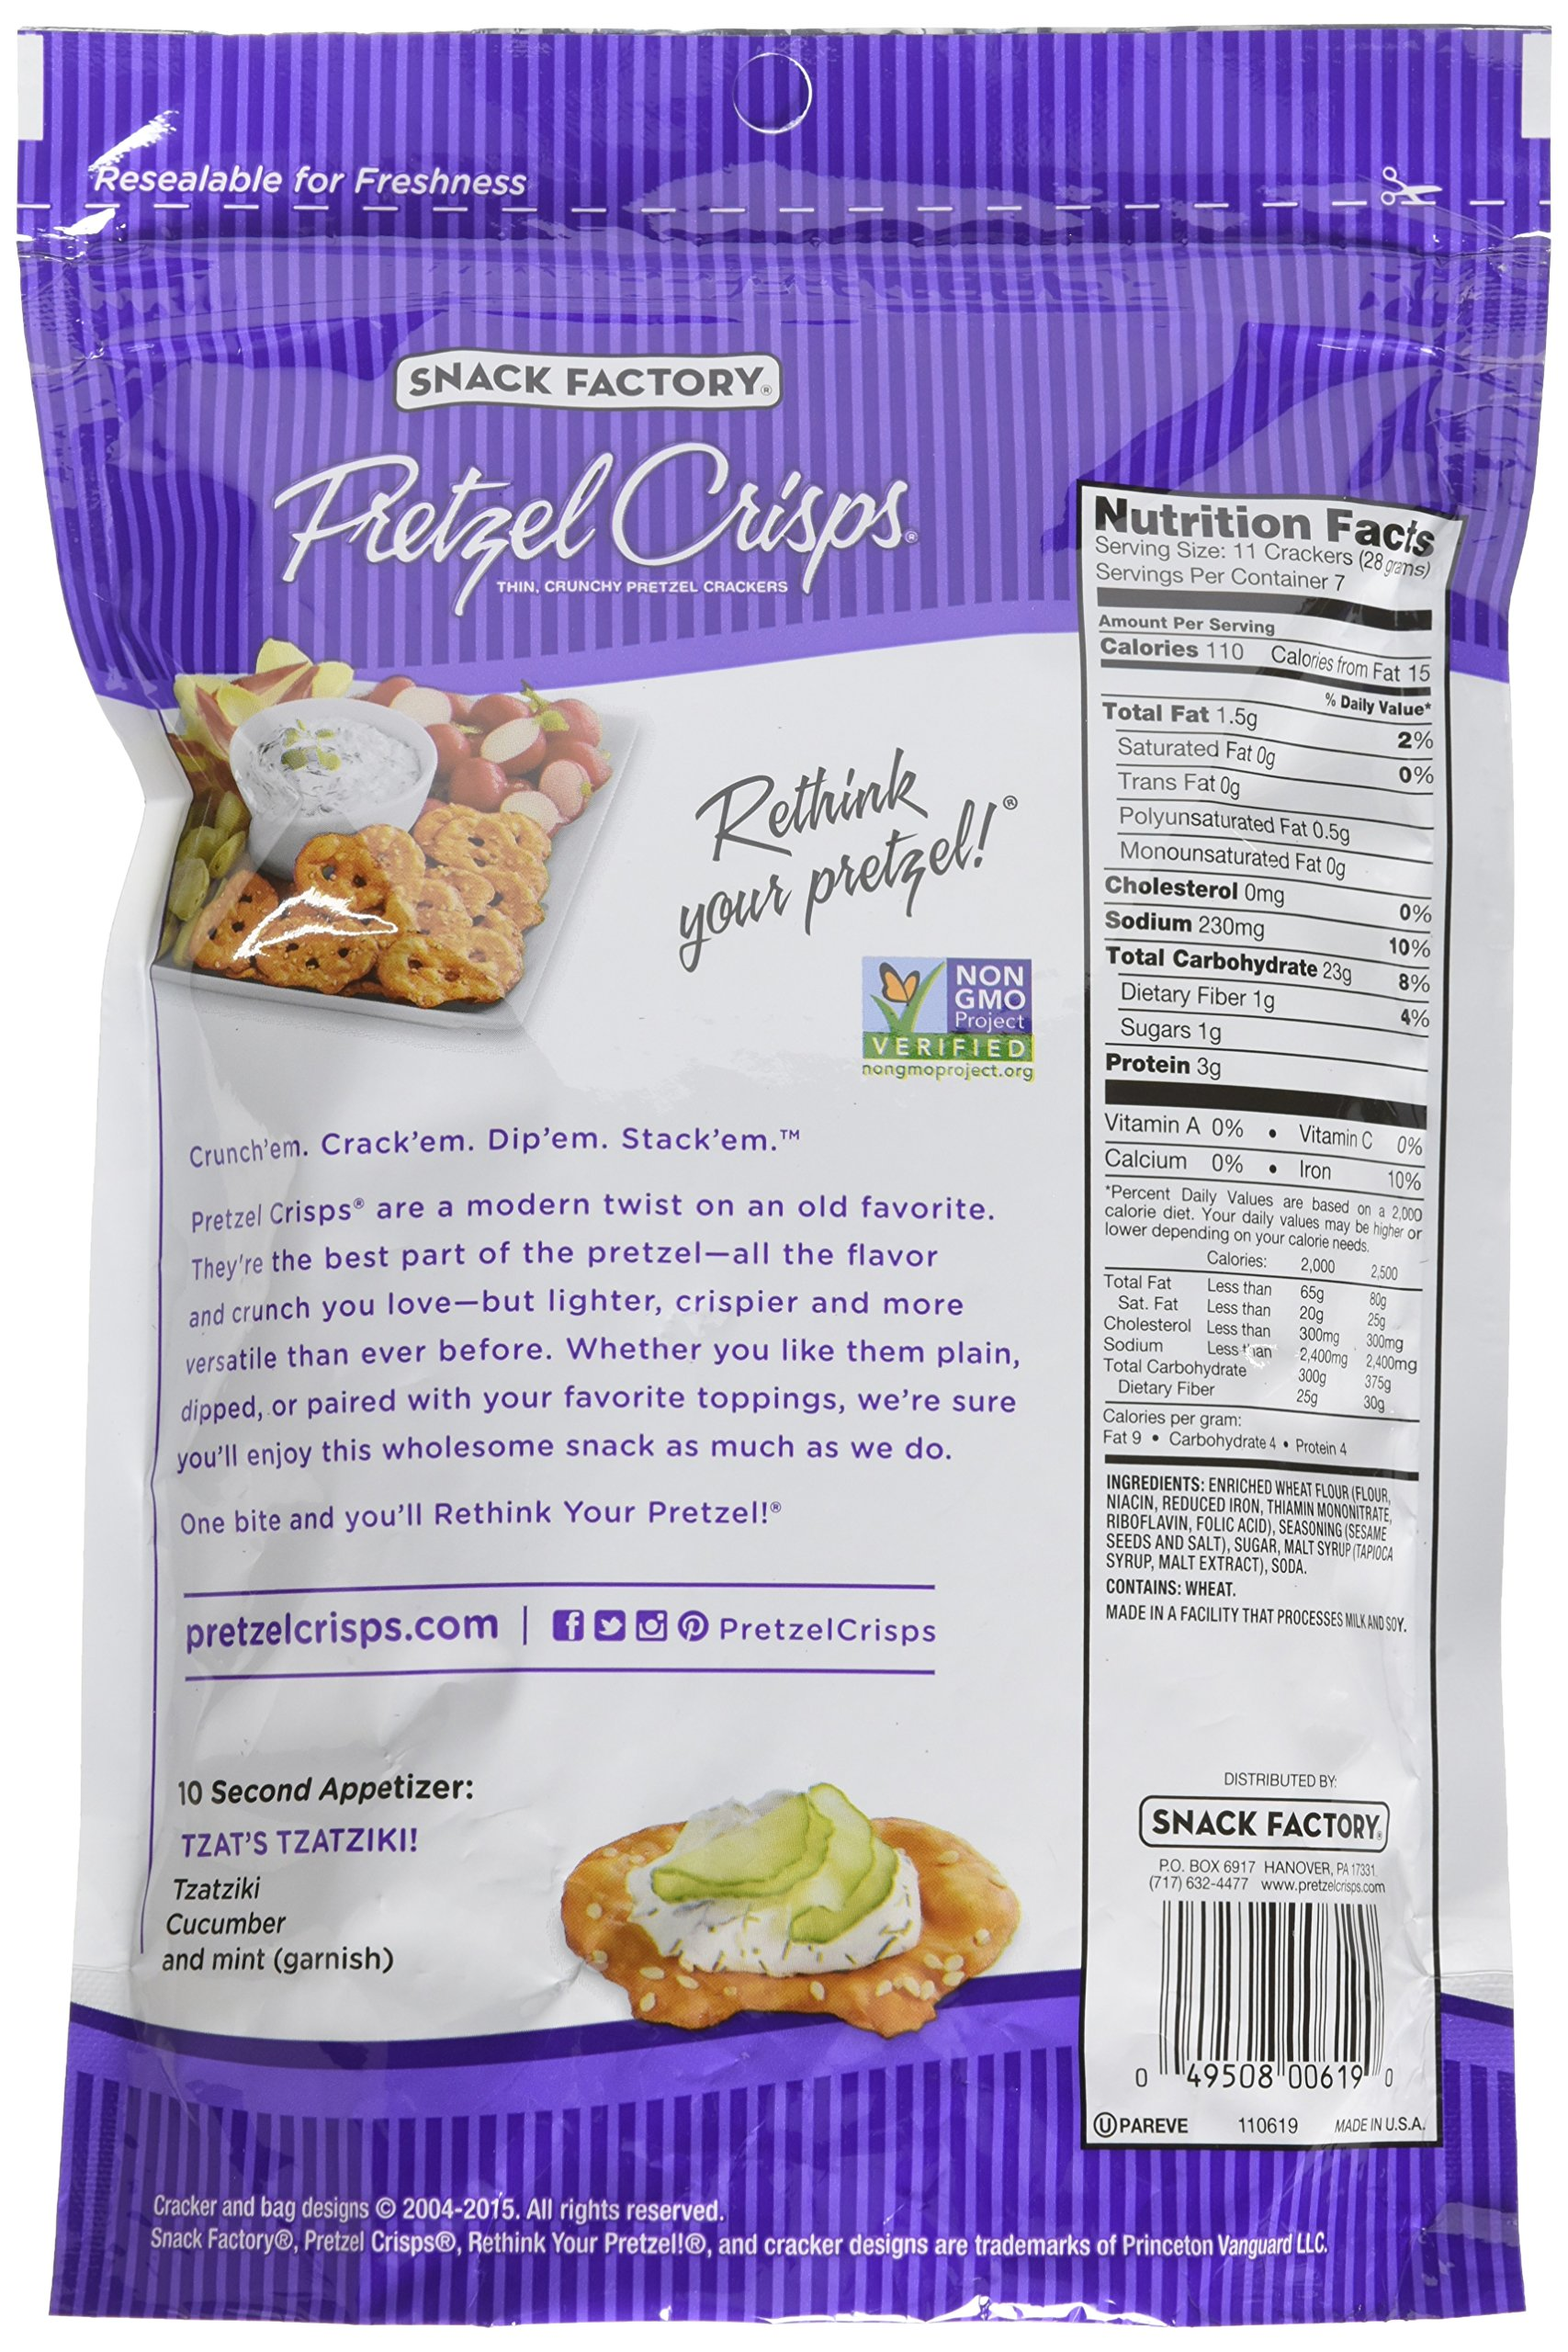 Snack Factory Pretzel Crisps Deli Style Sesame All Natural, 7.2 Ounce by Snack Factory (Image #4)